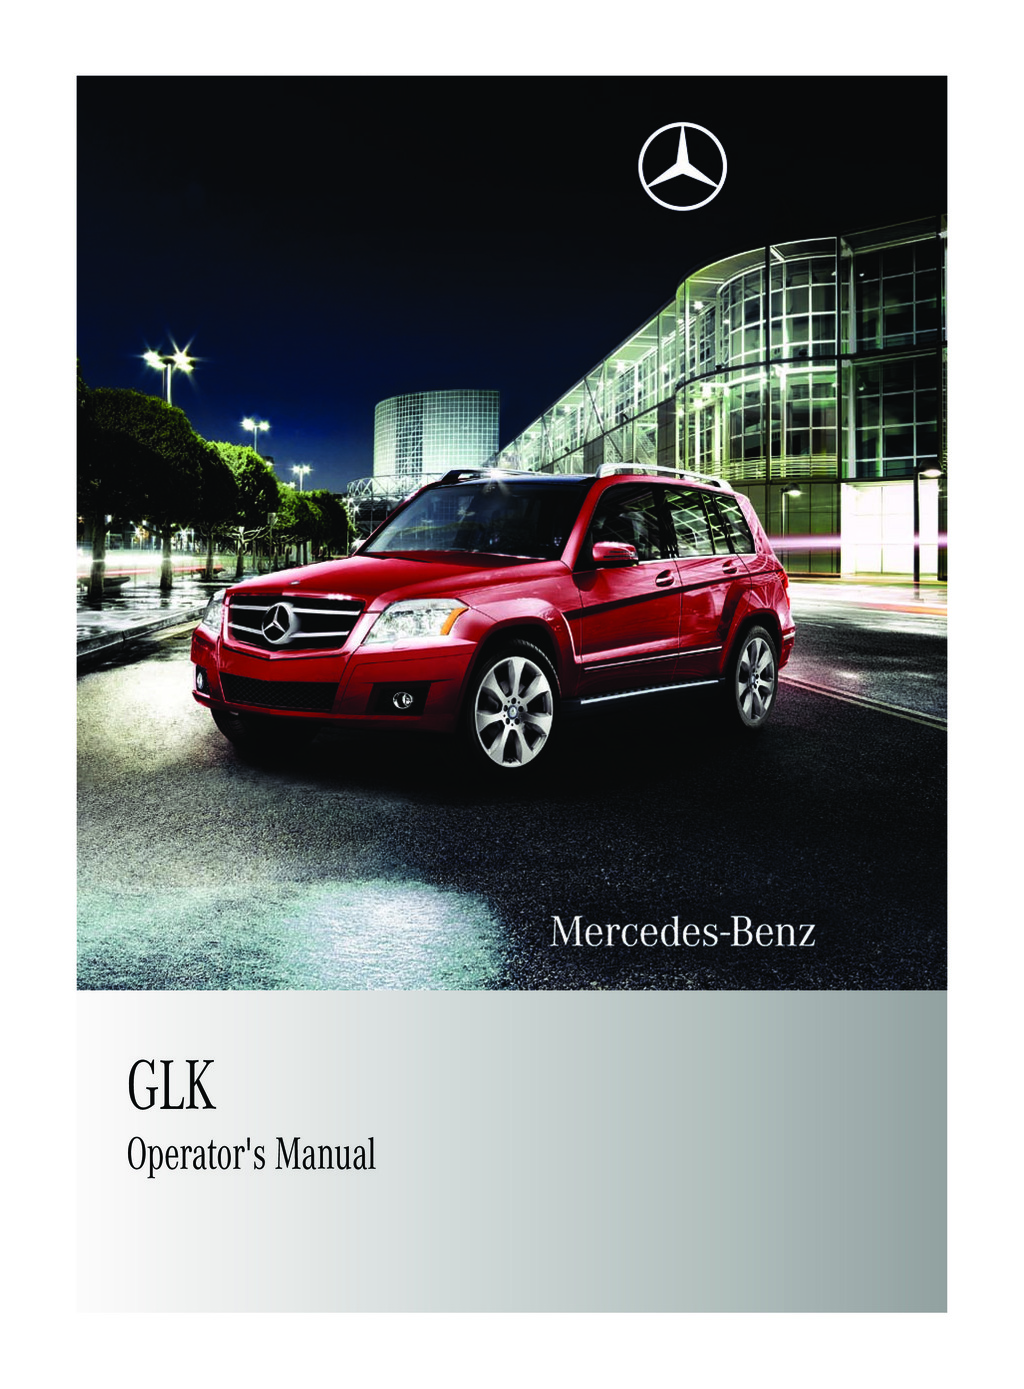 2011 Mercedes-Benz GLK Class owners manual